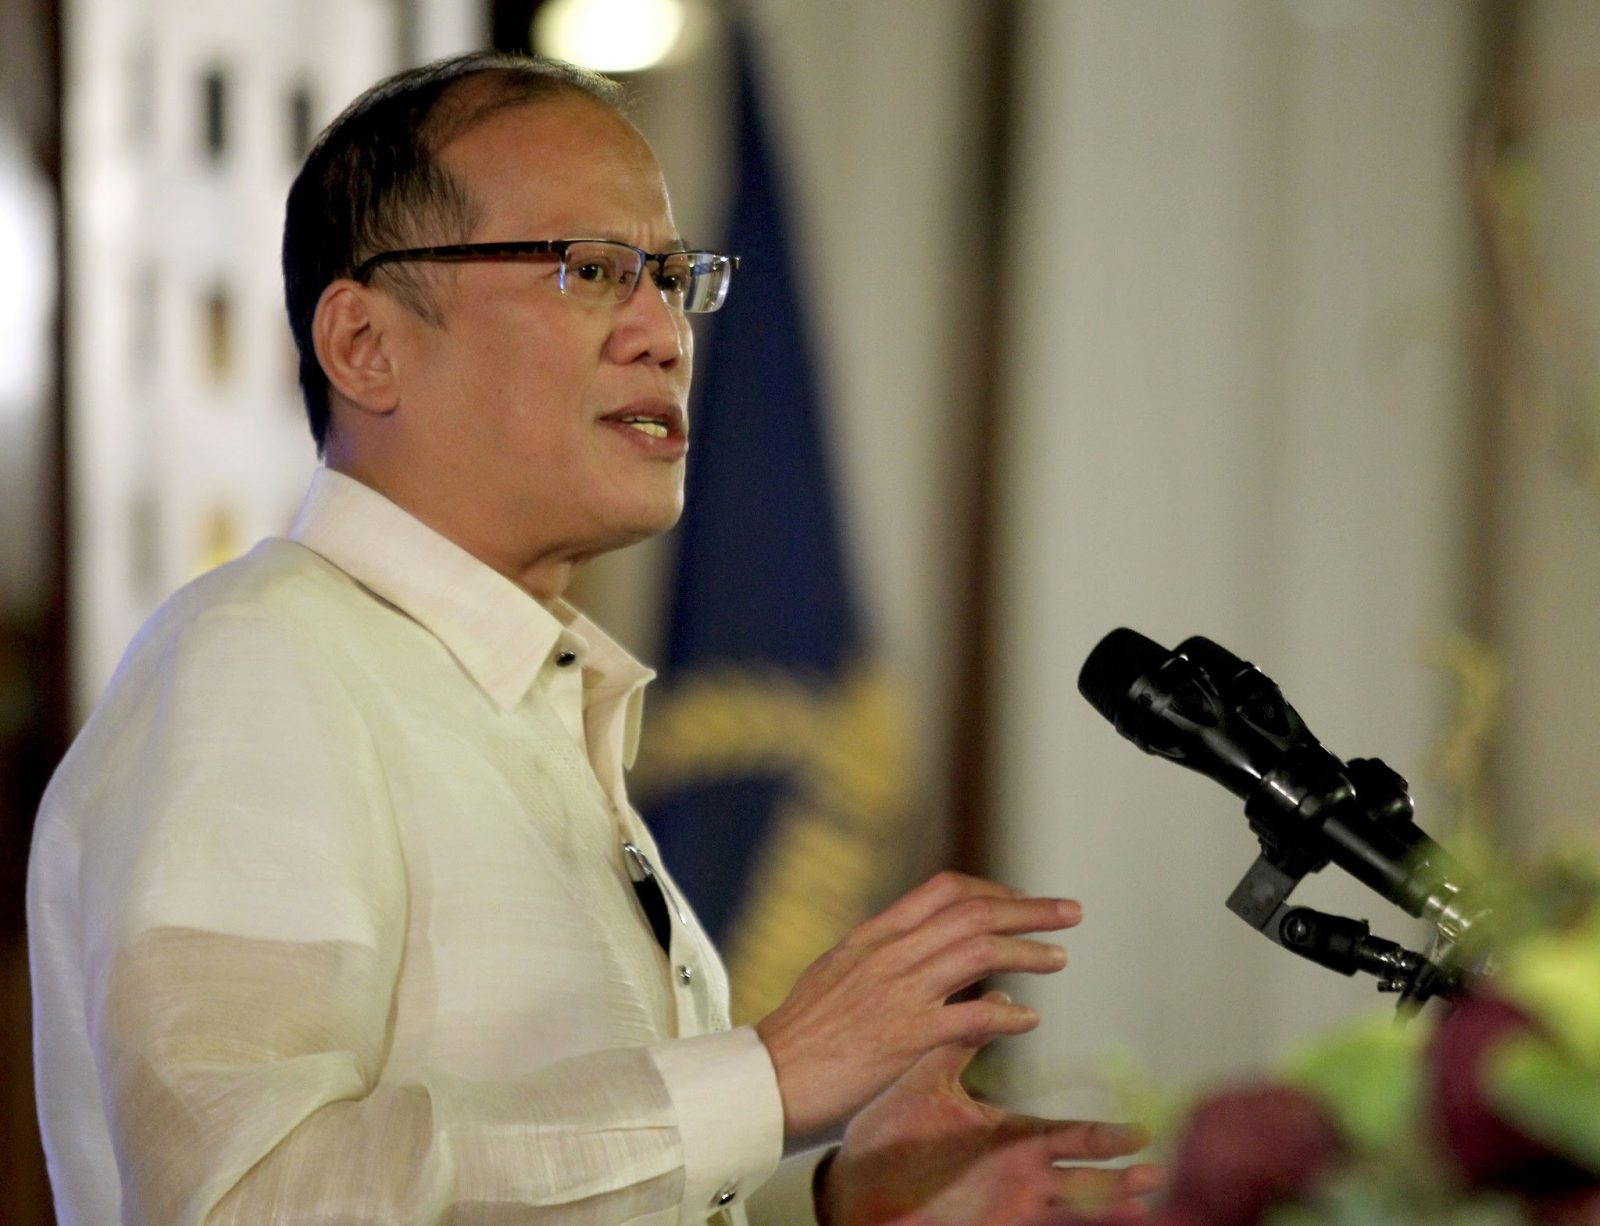 President Benigno S. Aquino III delivers his message during the Asian Development Bank (ADB) Reception at the ADB Headquarters in ADB Avenue, Mandaluyong City on Wednesday night (March 12). (Photo by Gil Nartea / Robert Viñas / Malacañang Photo Bureau)